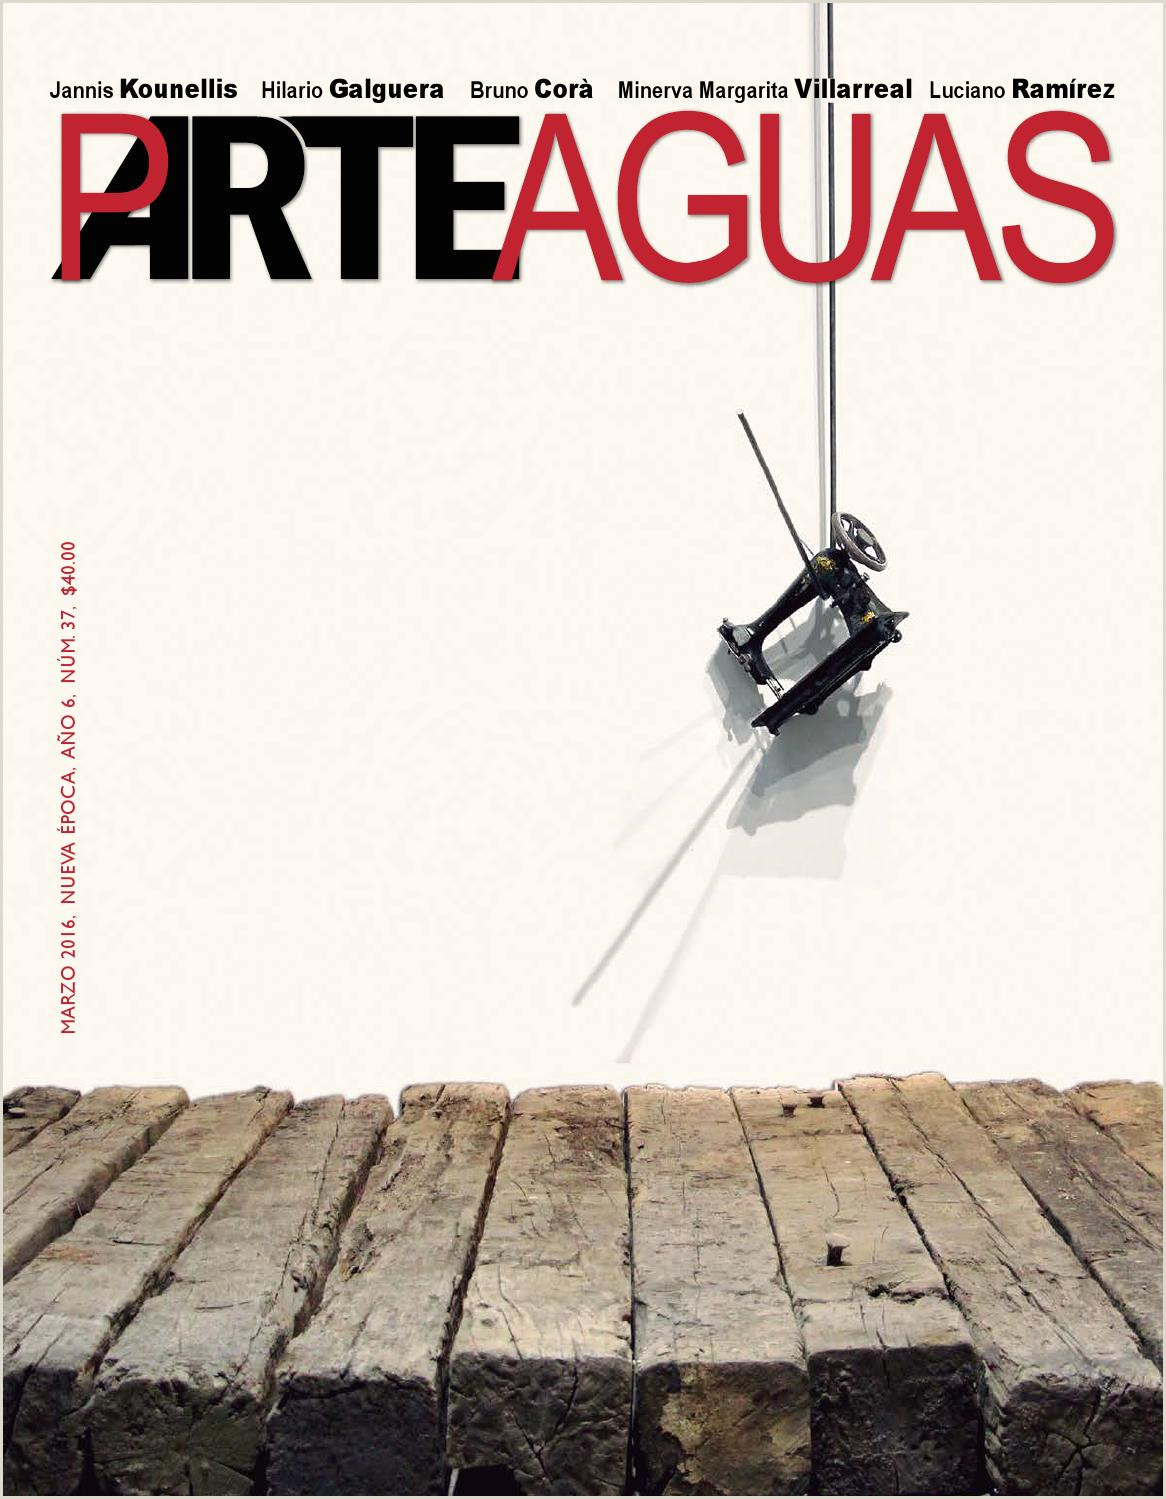 Parteaguas 37 by ica editorial issuu